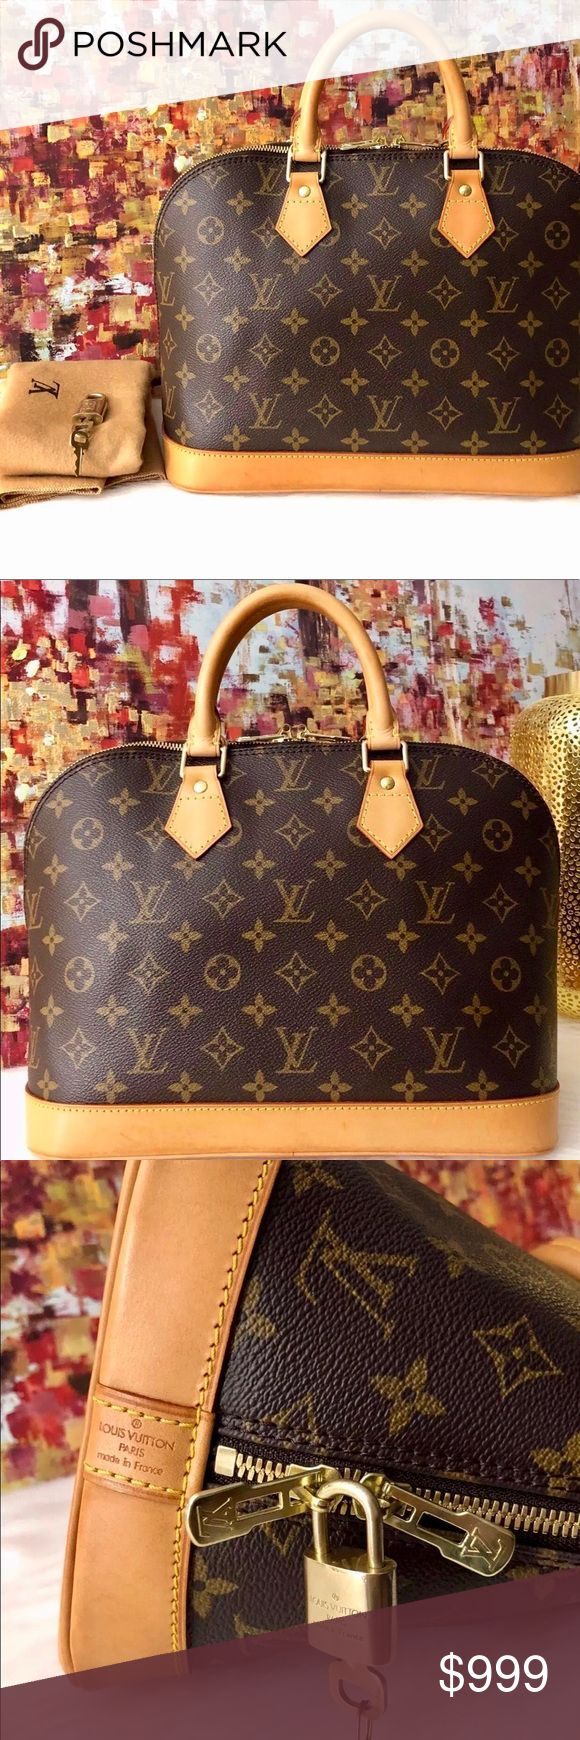 """Authentic LOUIS VUITTON  Alma PM Small Handbag ❤️NO TRADE❤️ Date Code:  BA1010 Made in France  Item Condition:  Monogram canvas is in EXCELLENT condition. Please see pictures for more details.  Item Description: Monogram canvas exterior Zip top closure Golden brass hardware Vachetta leather double rolled handles Vachetta leather trimmings Textile lining interior Slip pocket Dimensions: 12.0"""" L X 9.0""""H x 6.25""""W (approx.) Accessories: Dust bag, lock/2 keys #313 included  ❤️NO EXCHANGE OR…"""